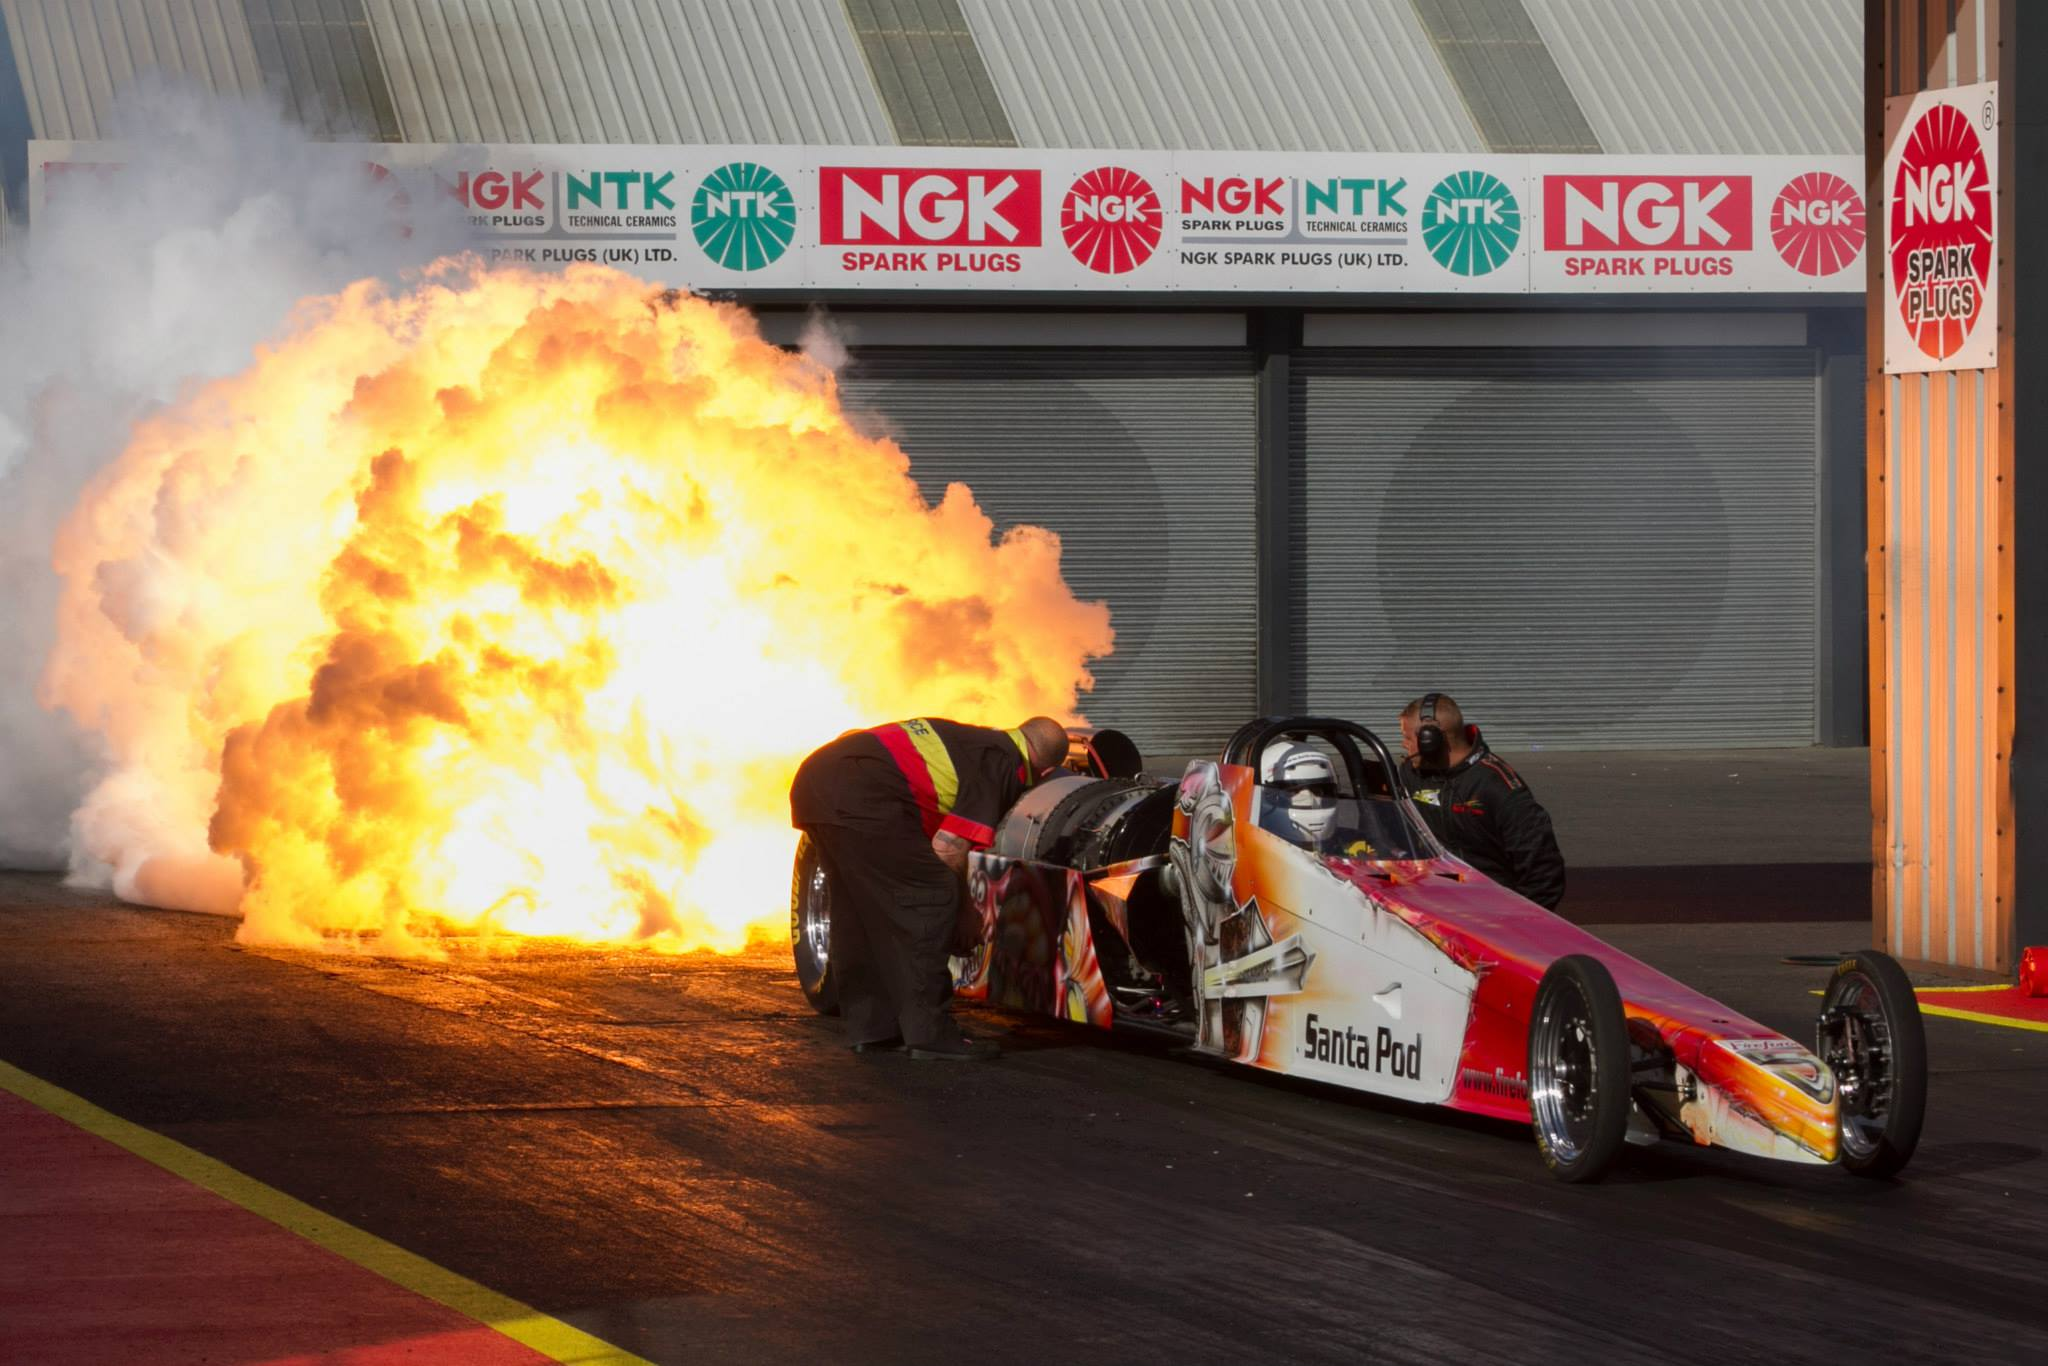 Race car with flames at Flame and Thunder